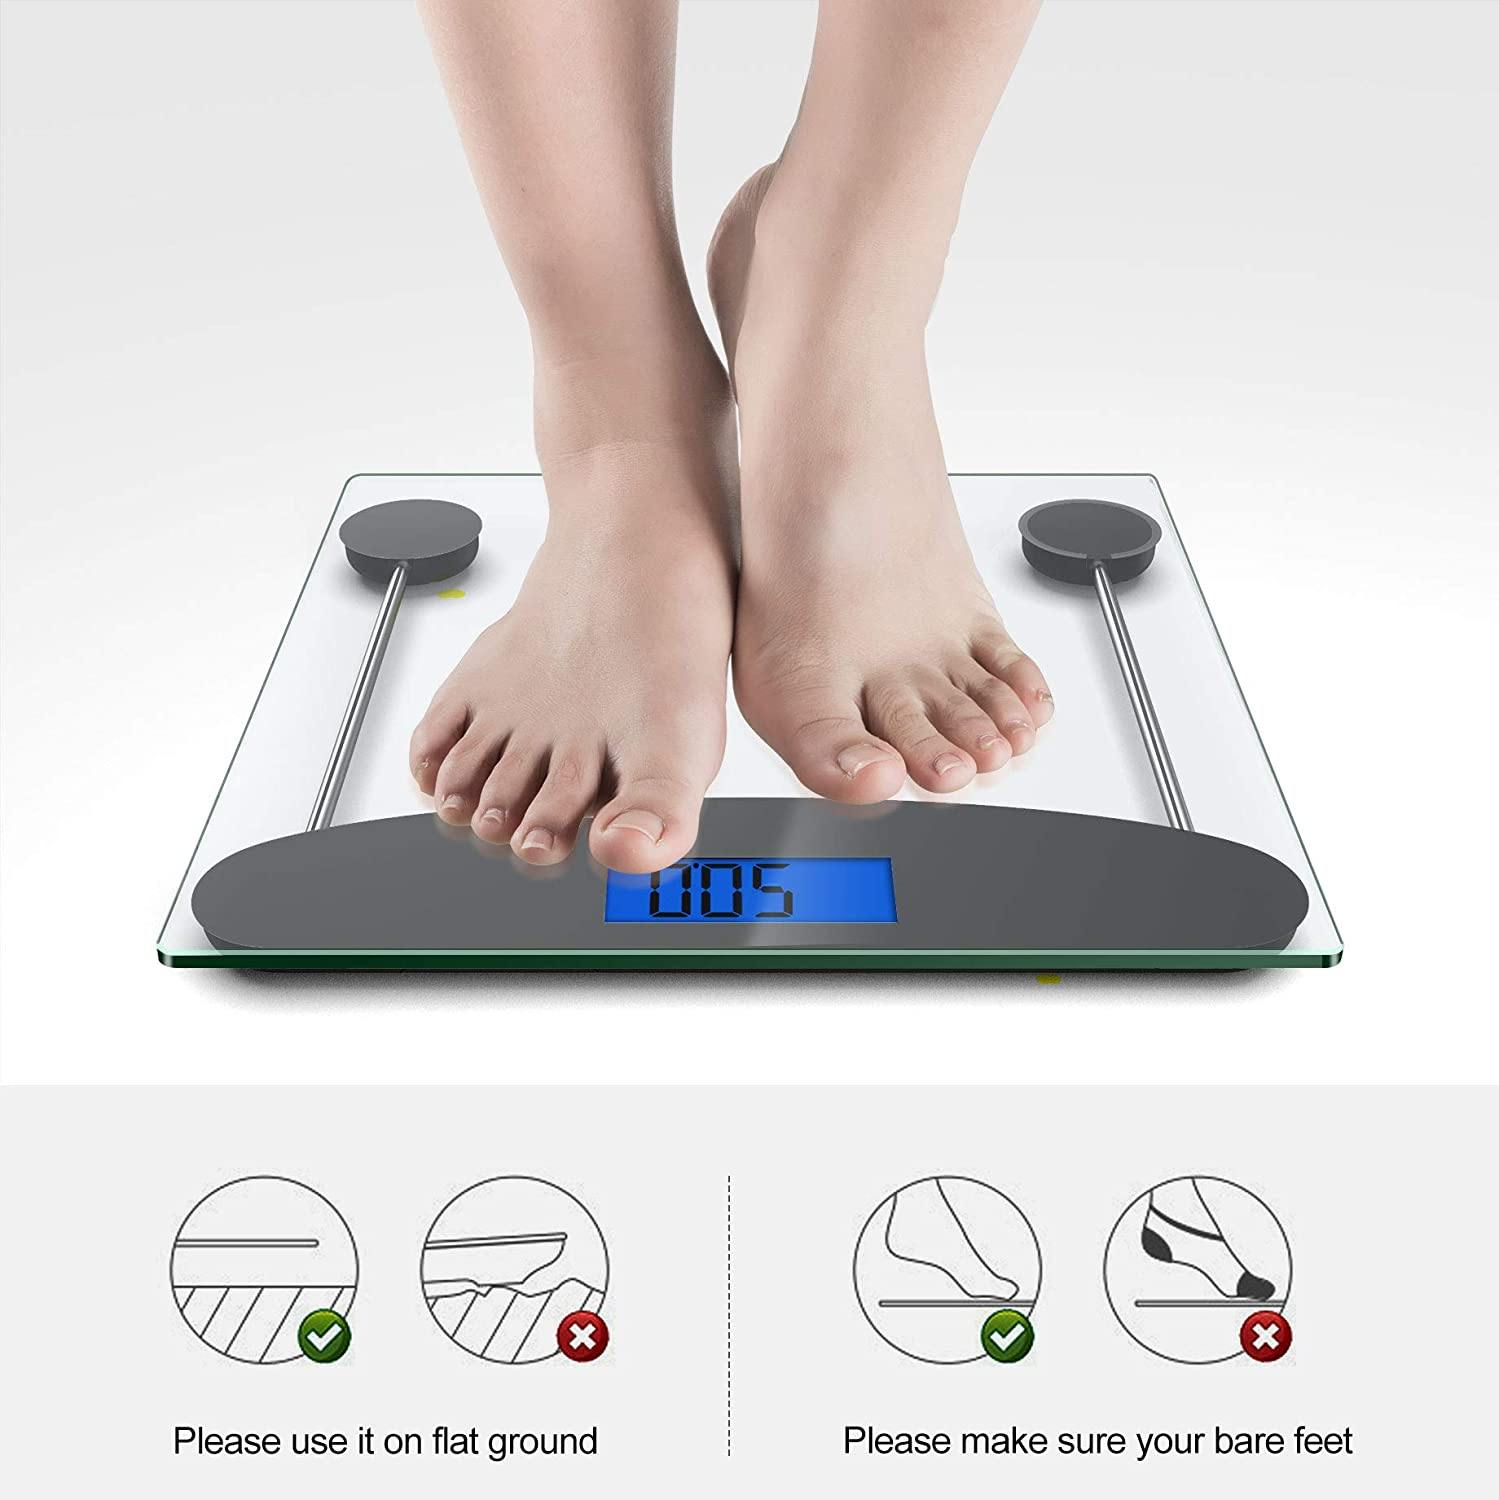 TechRise Digital Body Weight Scale 6mm Backlight Tempered Glass